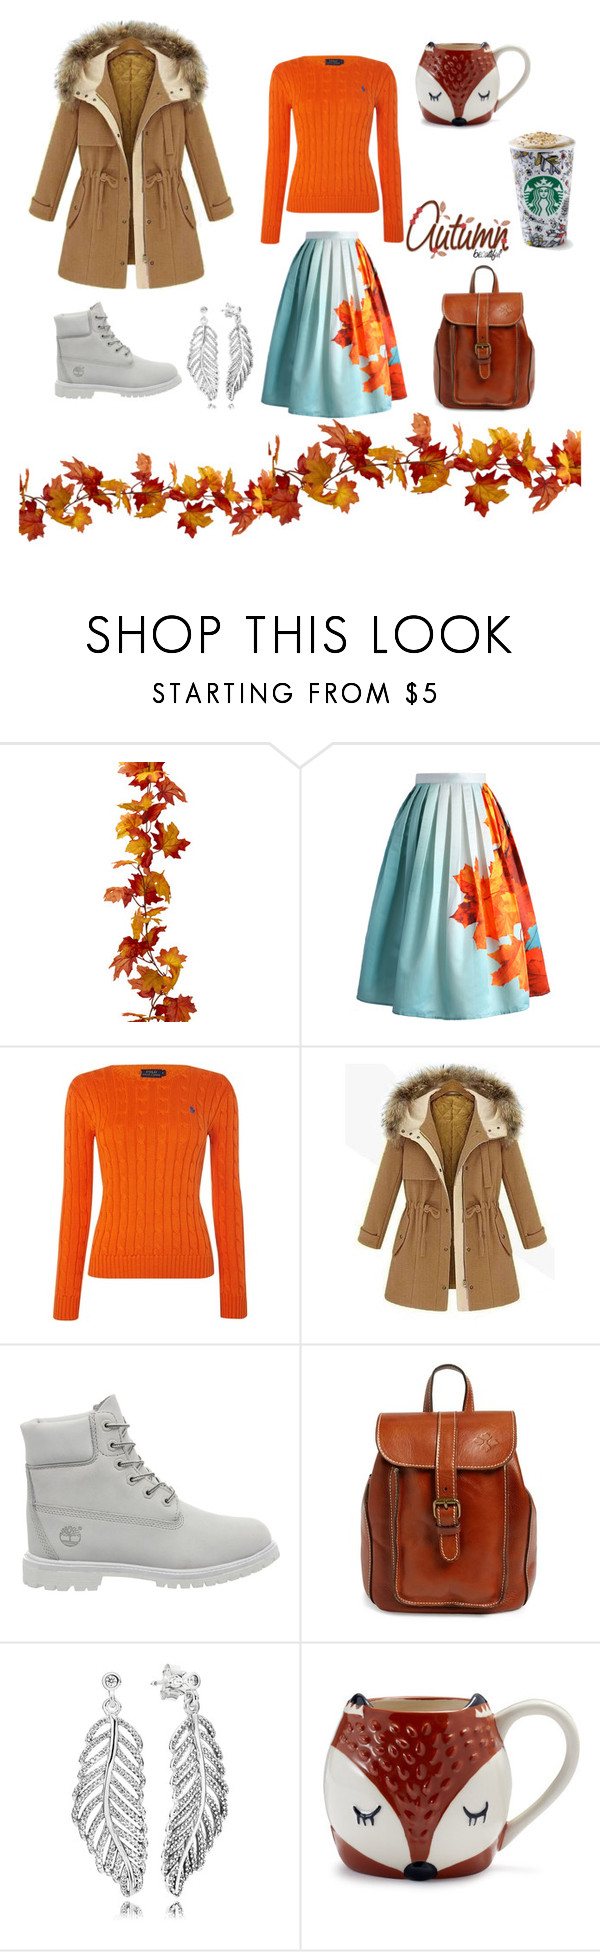 """Autumn beautiful"" by juliesi ❤ liked on Polyvore featuring Chicwish, Polo Ralph Lauren, Timberland, Patricia Nash, Pandora and Sur La Table"